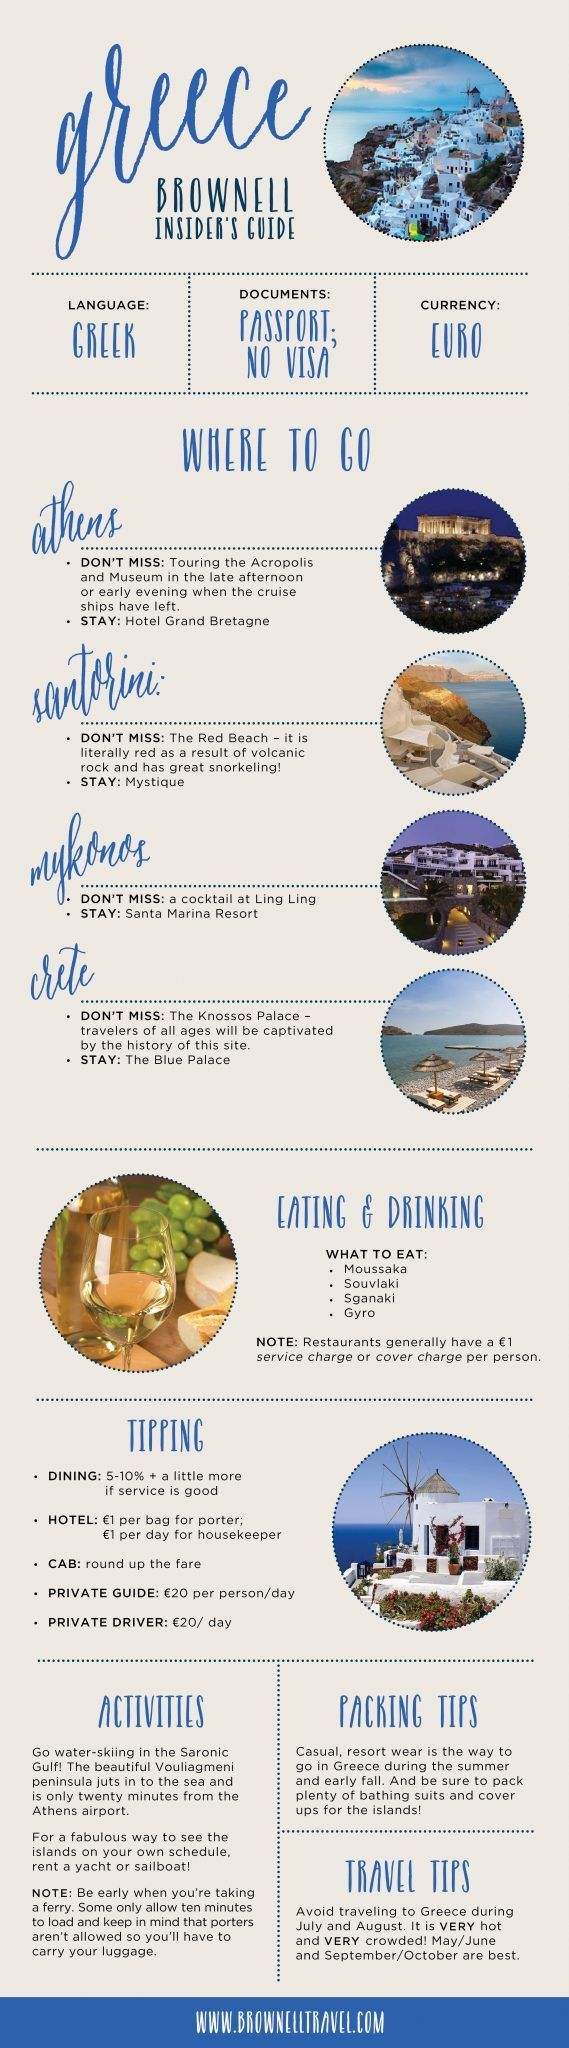 what is greece best known for